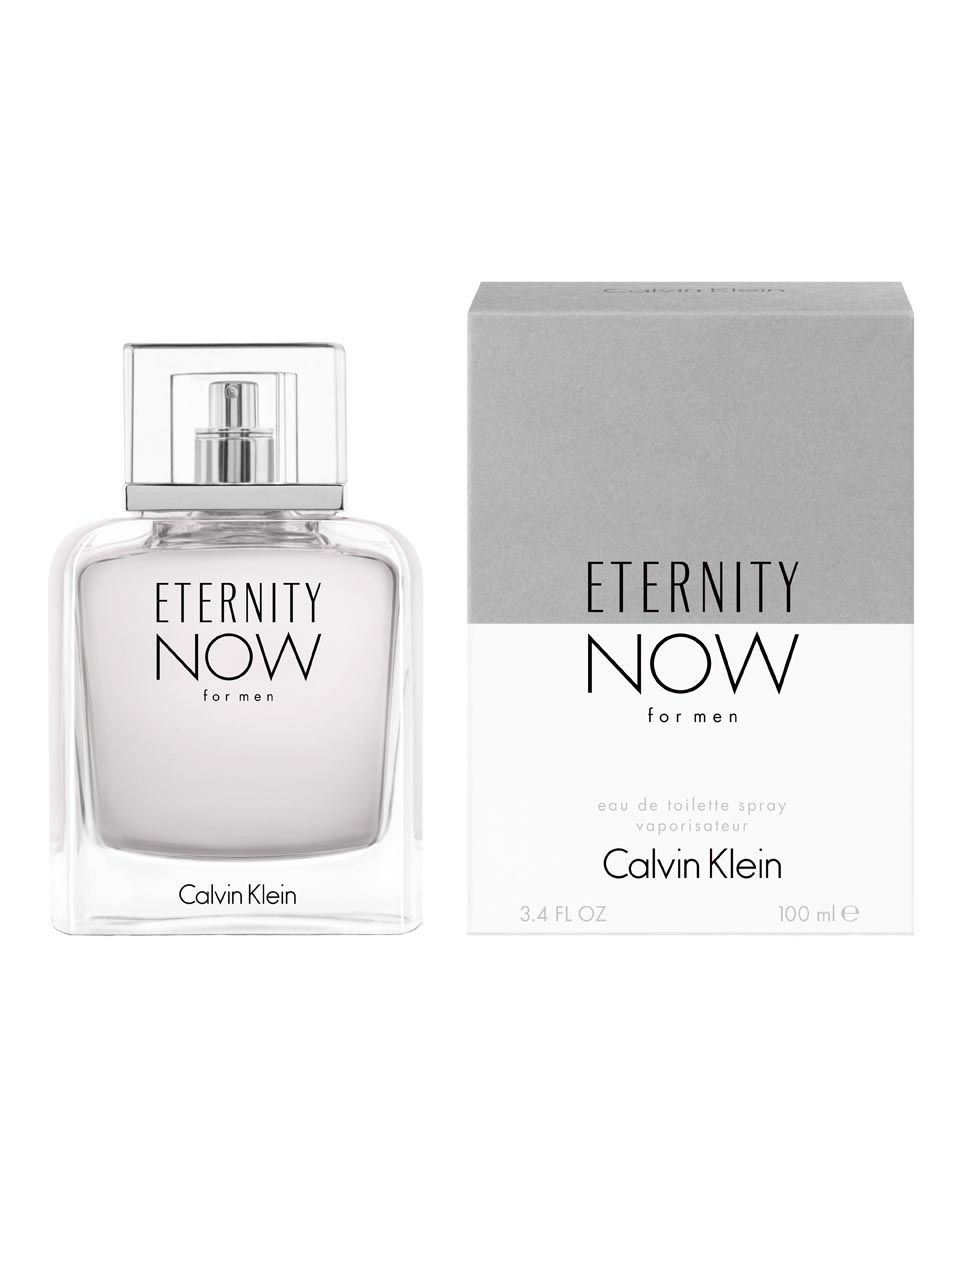 CK Eternity Now edt